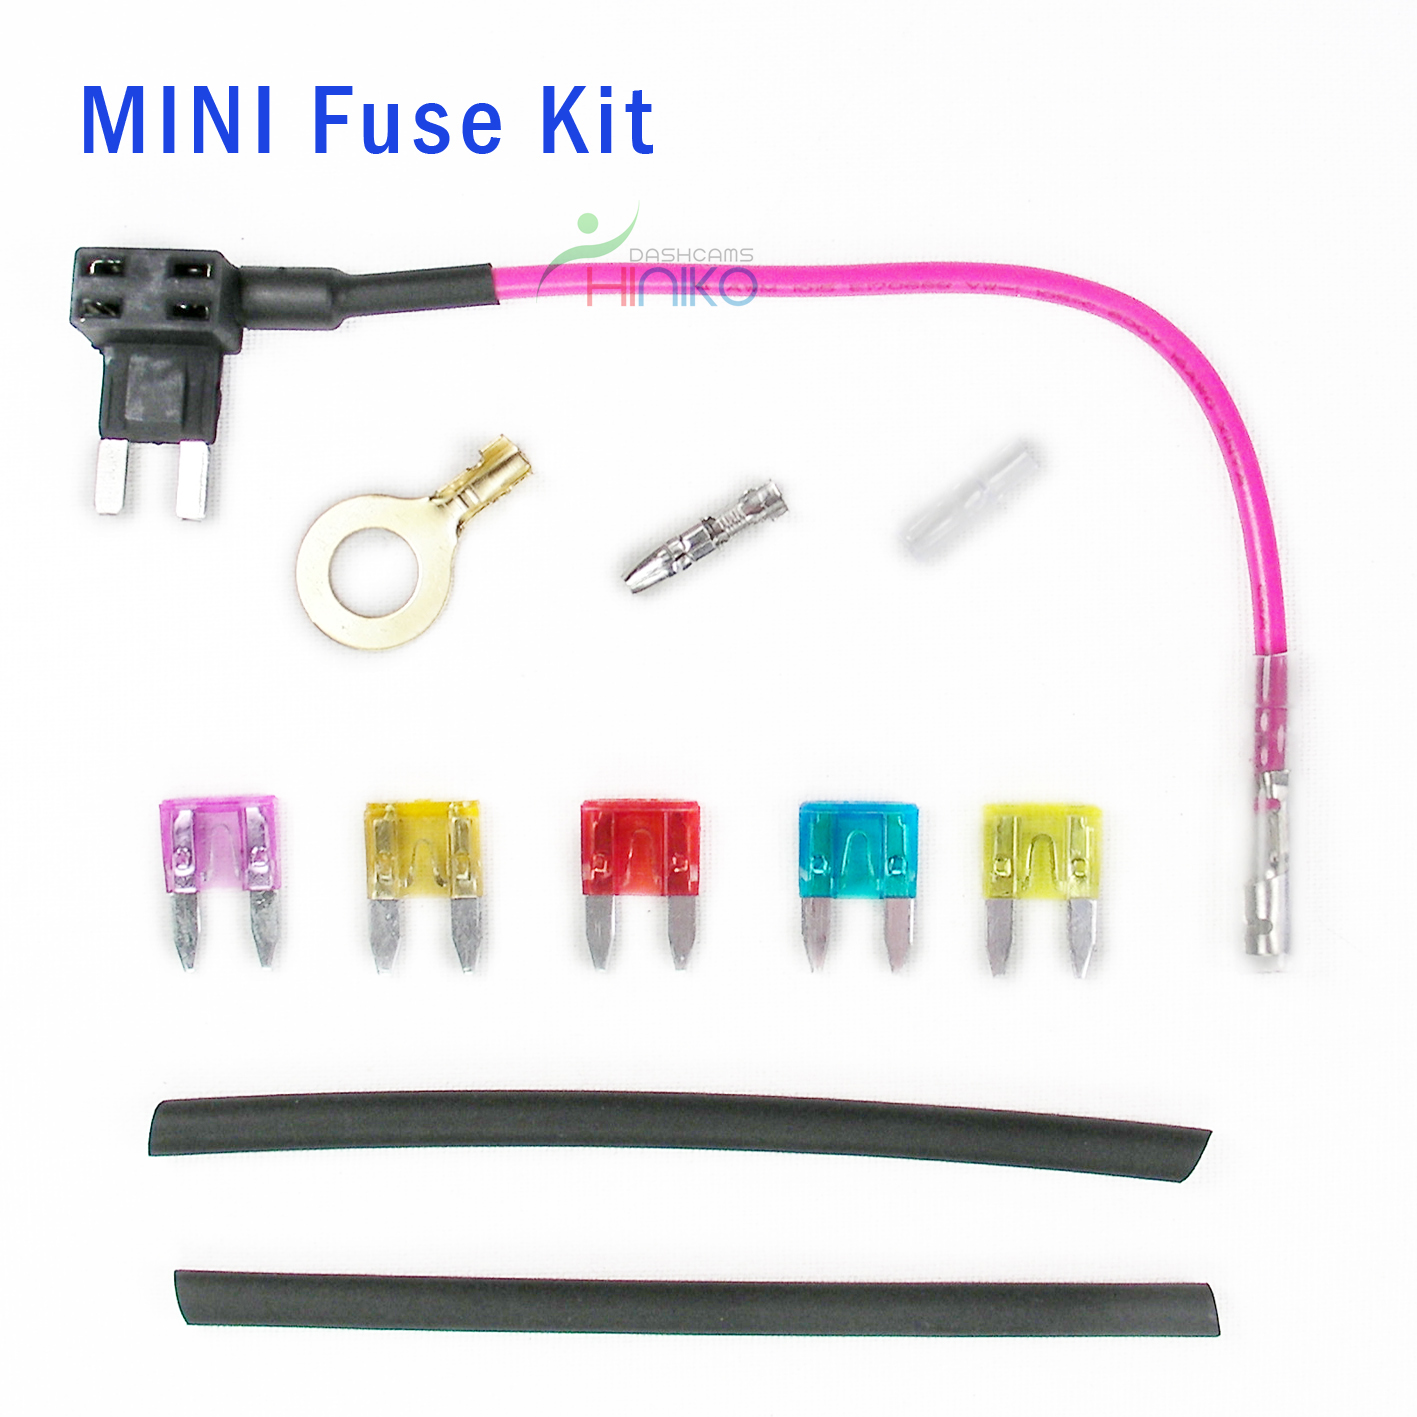 Miniusb Hardwire Kit Bdp Battery Discharge Prevention Device Car Fuse Box Tap Mini Blade Add A Circuit In Piggy Back